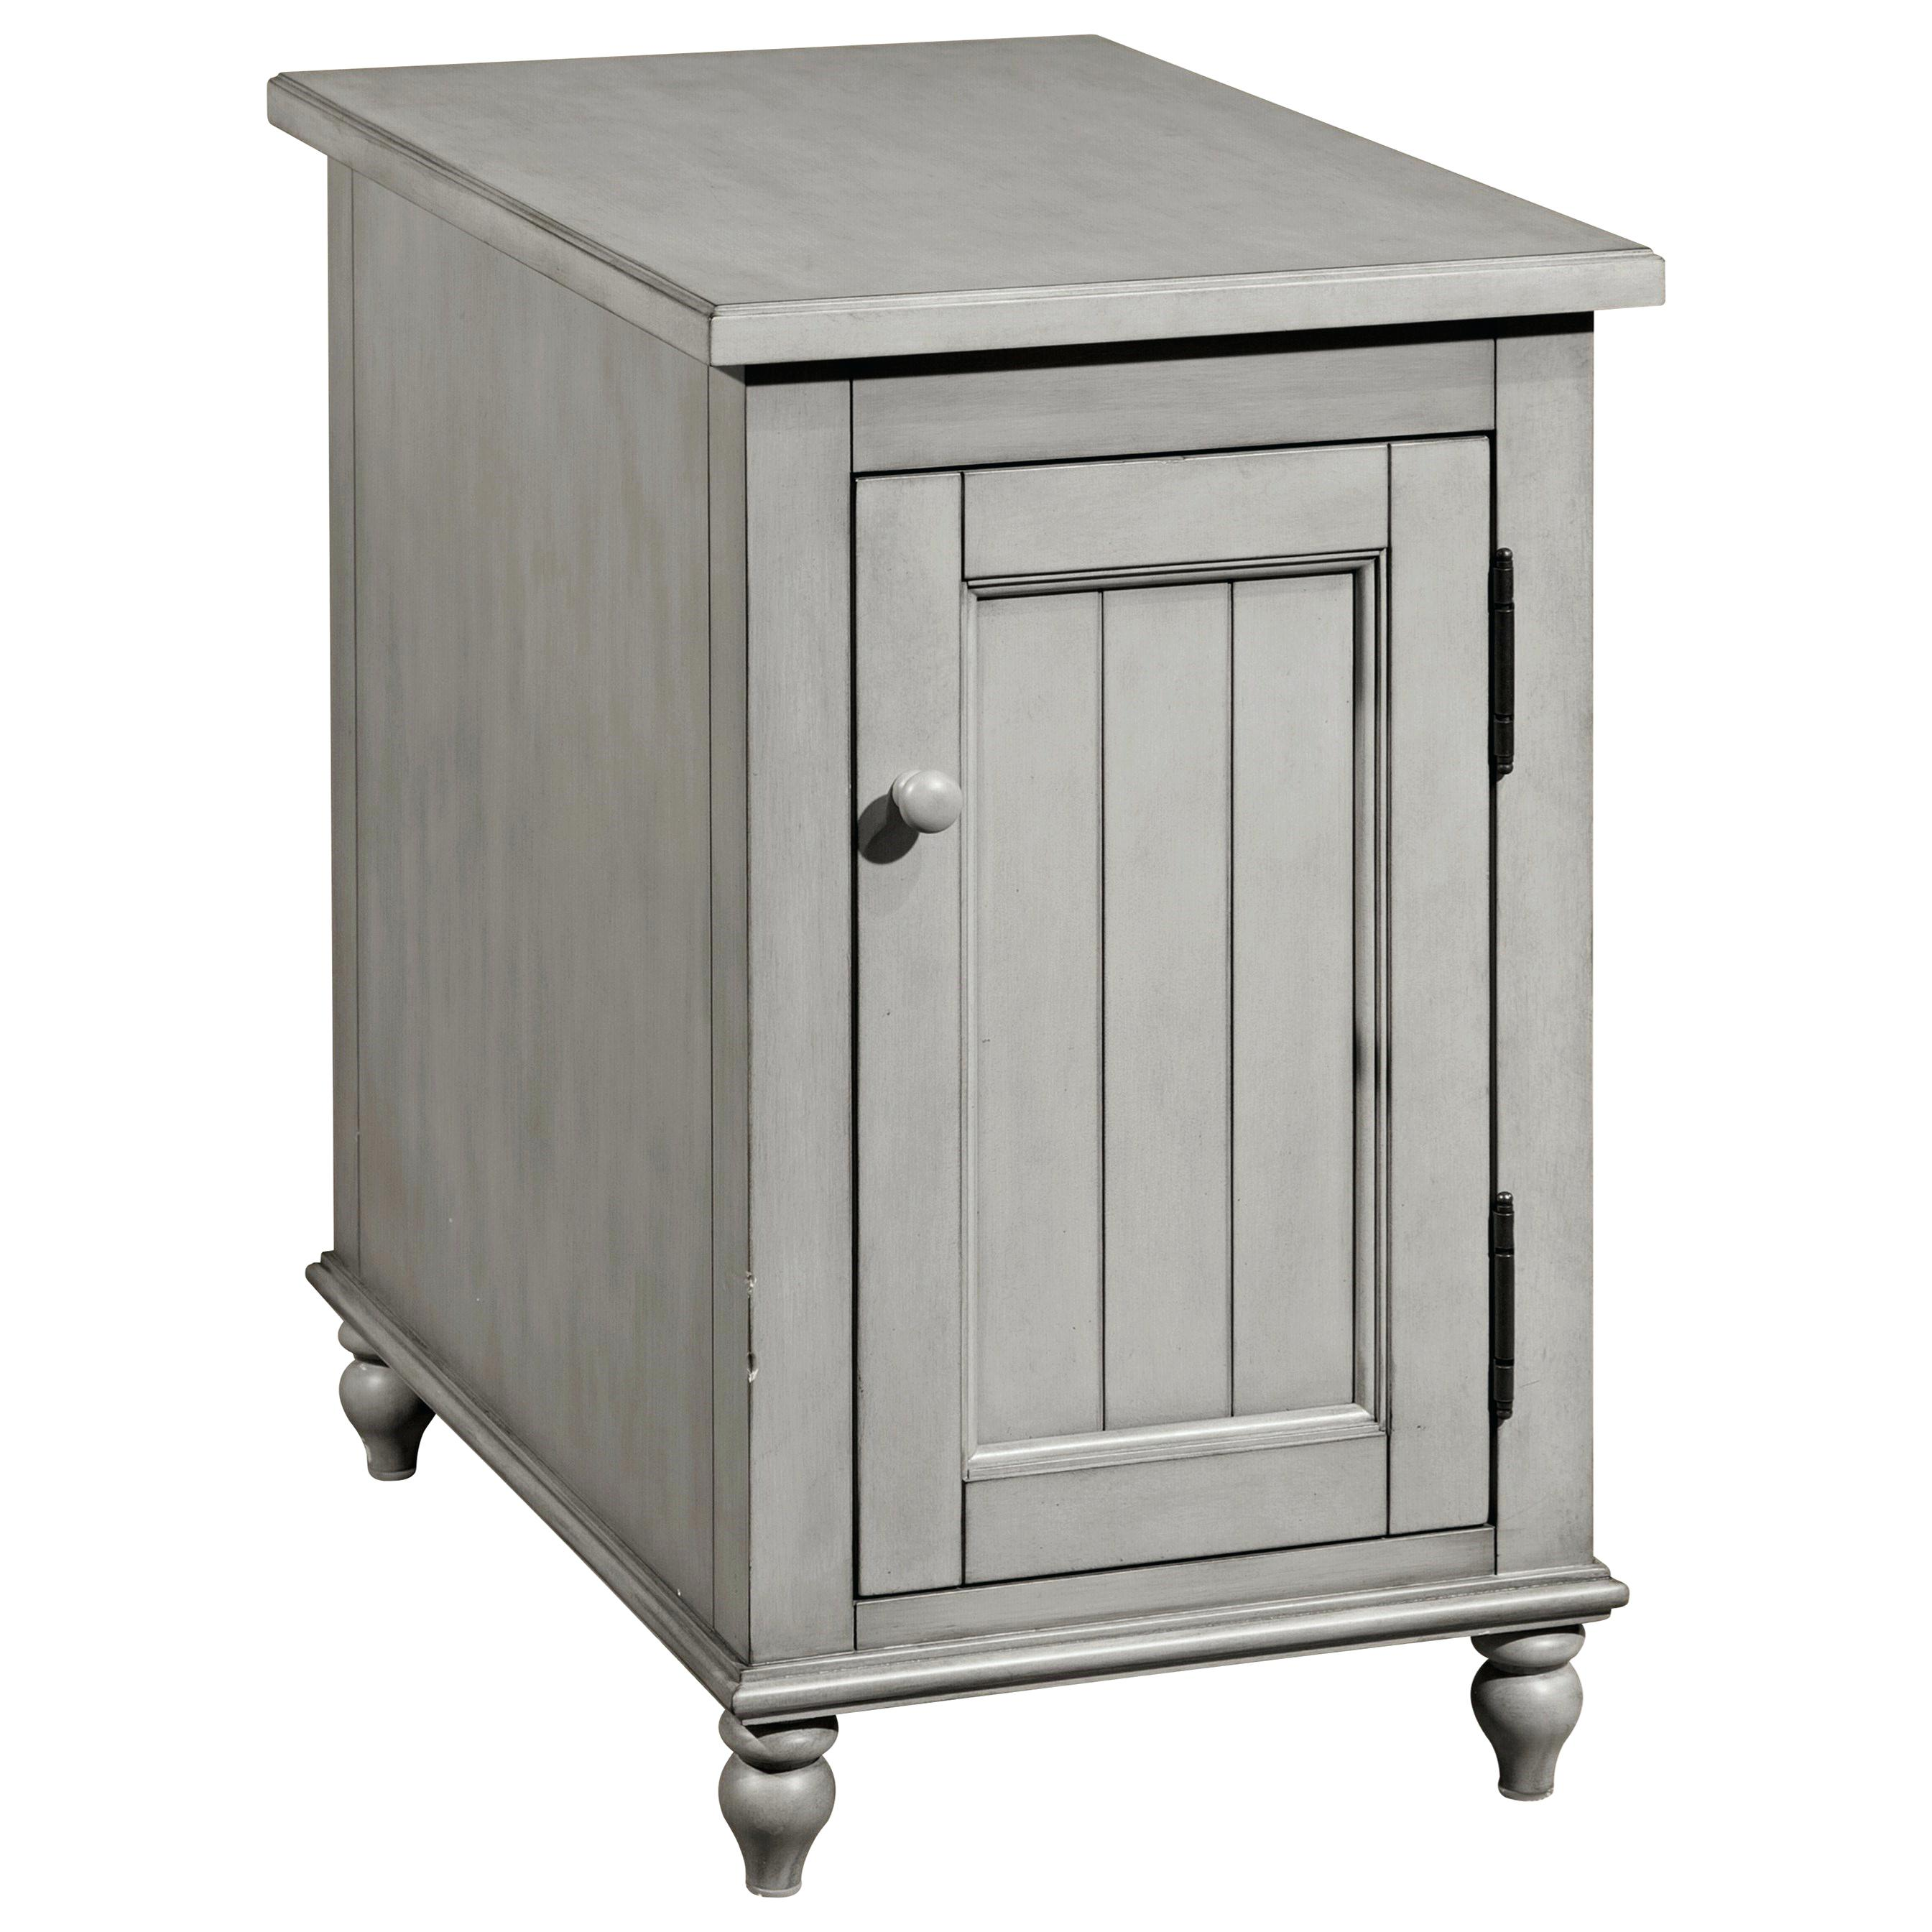 grey accent table vanluedesign furniture gray target trestle dining linens shabby chic threshold rectangular umbrella barn doors for room affordable chairs small study desk mid